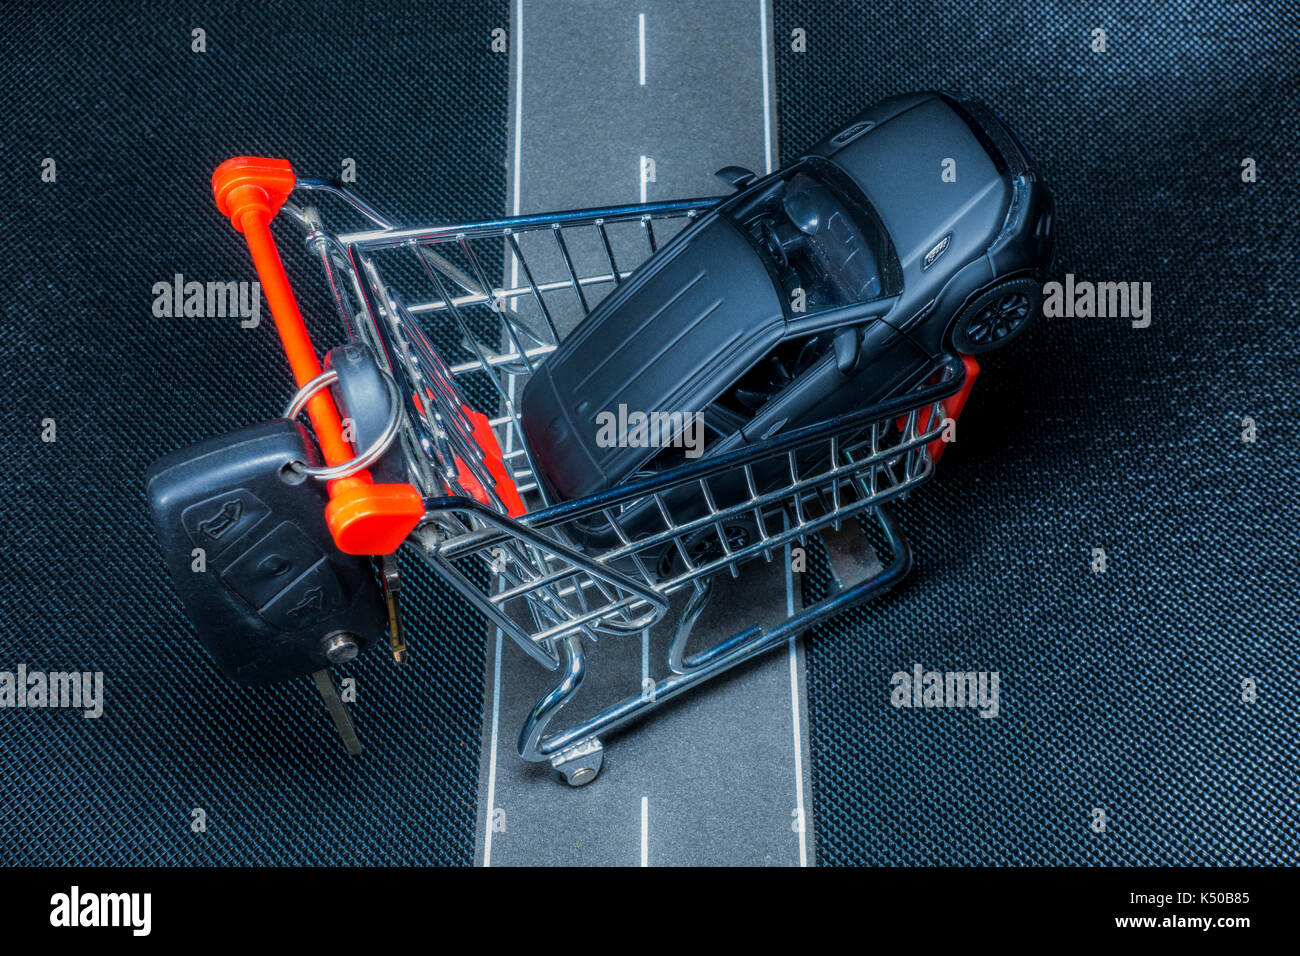 A closeup model shopping trolley holding a black model car on a lifelike road. Real Keys are added to illustrate the business concept of buying a car. - Stock Image